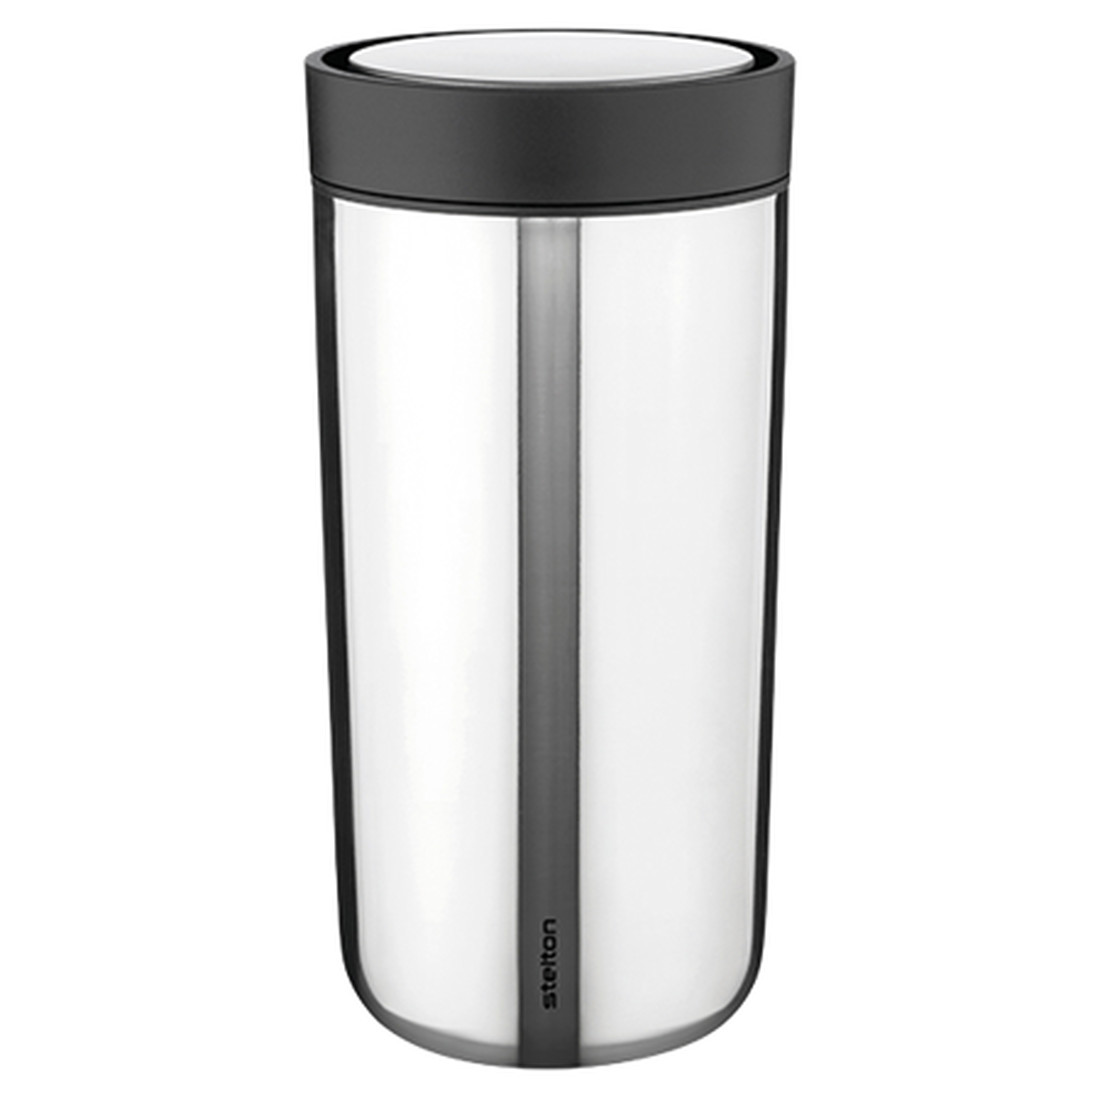 To Go Click Thermobecher Edelstahl 0,5l by stelton